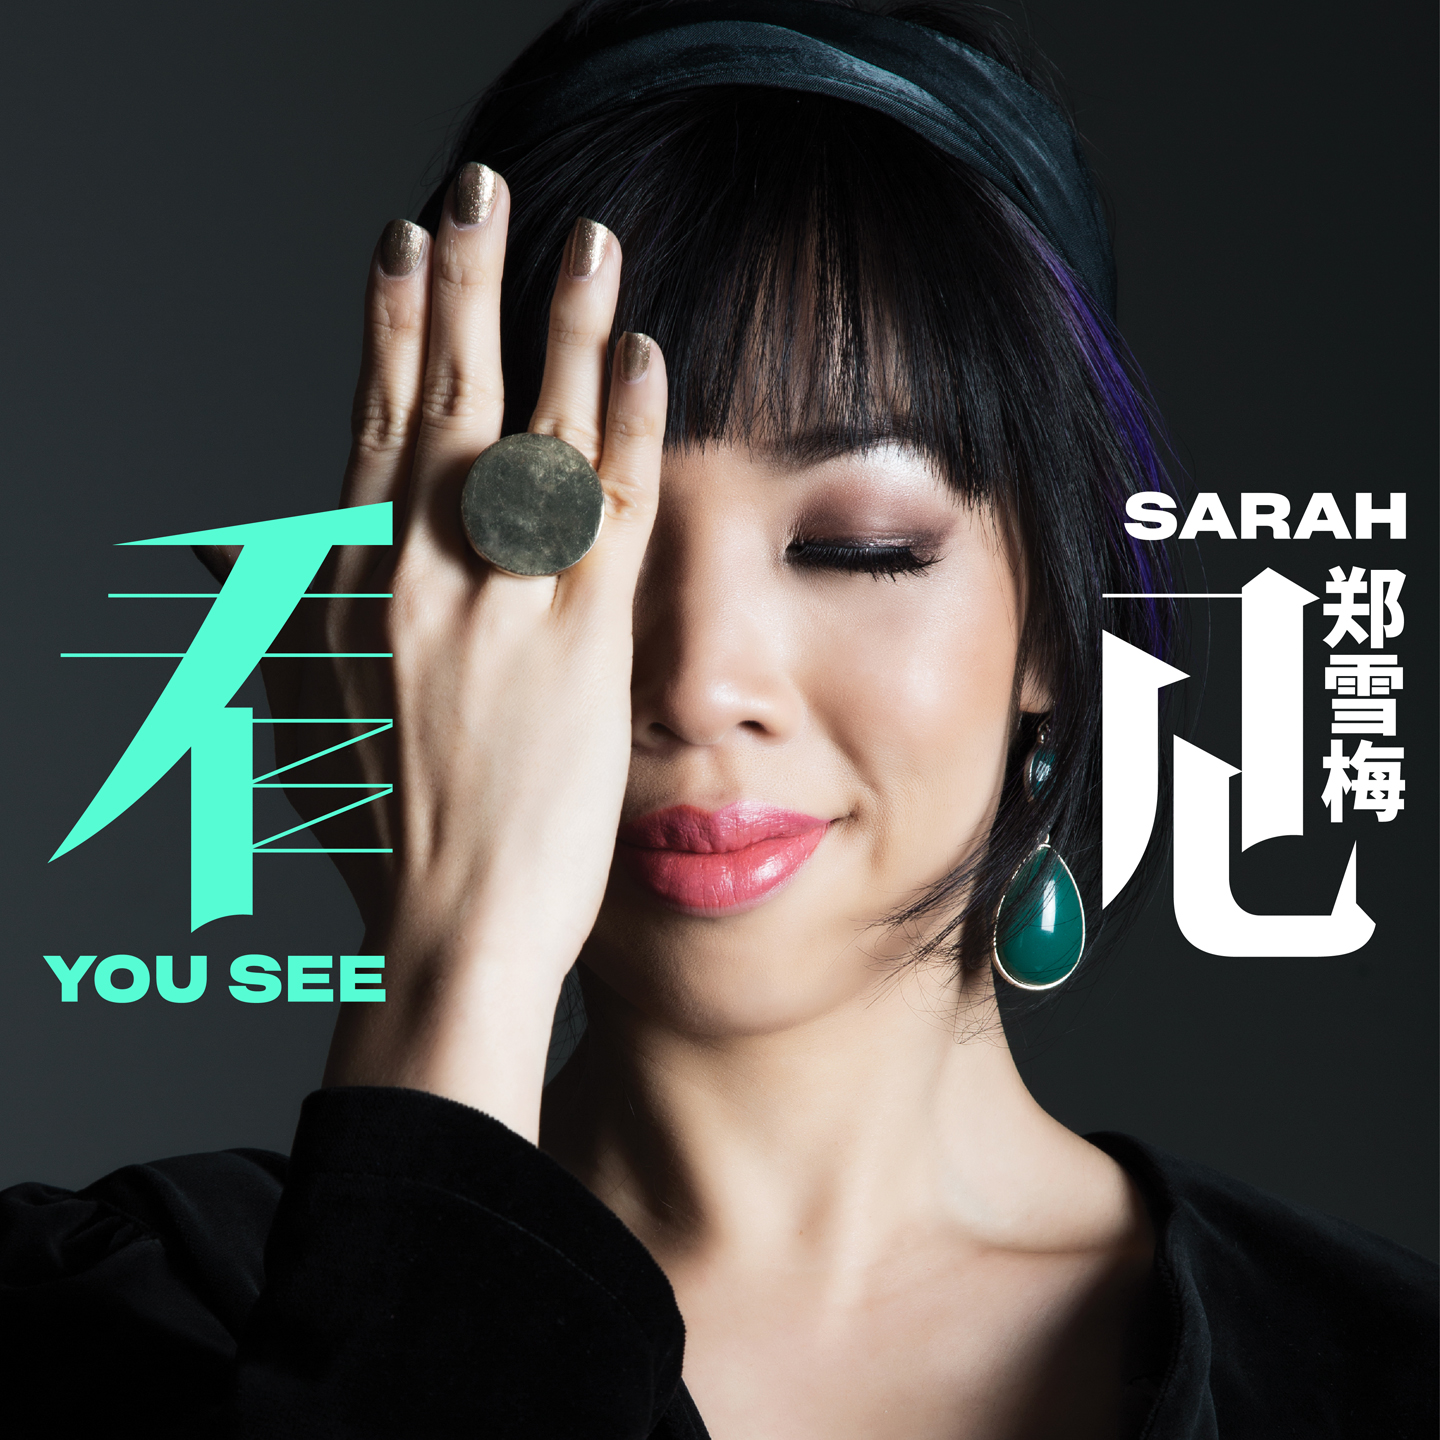 郑雪梅Sarah Kan Jian Album Cover Sep 2018-1440.jpg